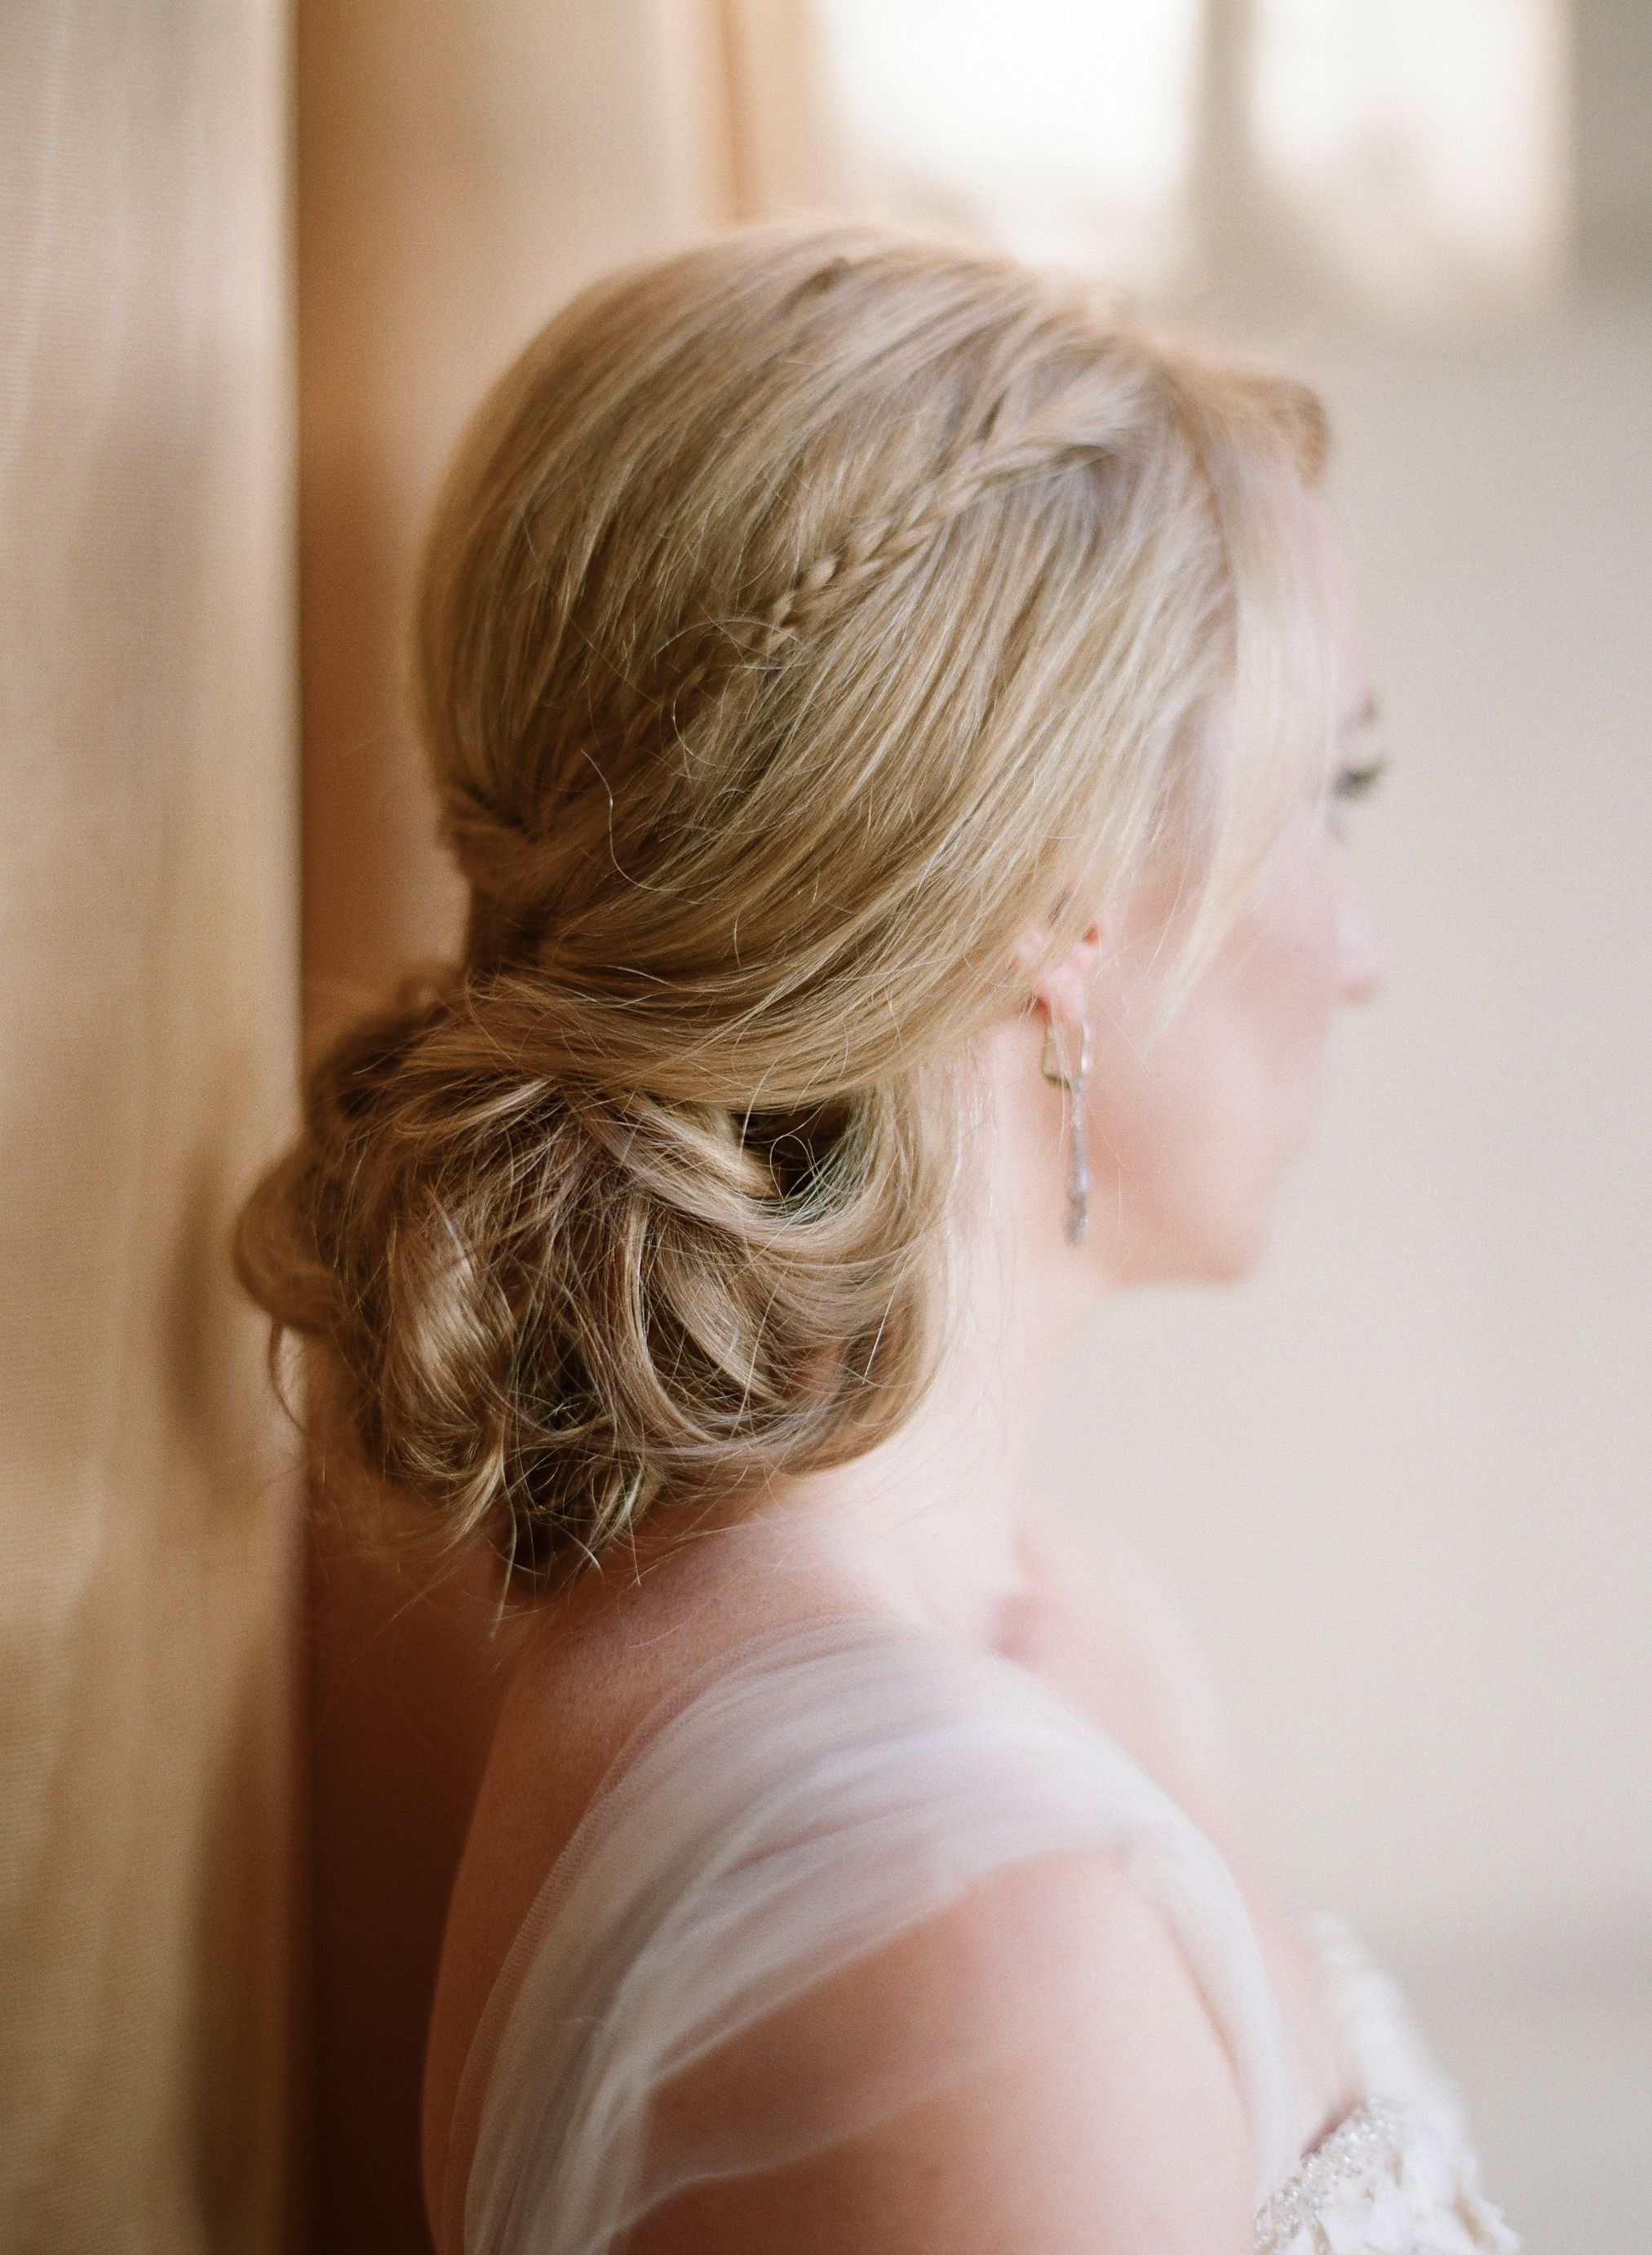 Blushing Black Tie Affair At The Four Seasons Beautiful Bridal Hair Wedding Hairstyles Updo Braided Hairstyles